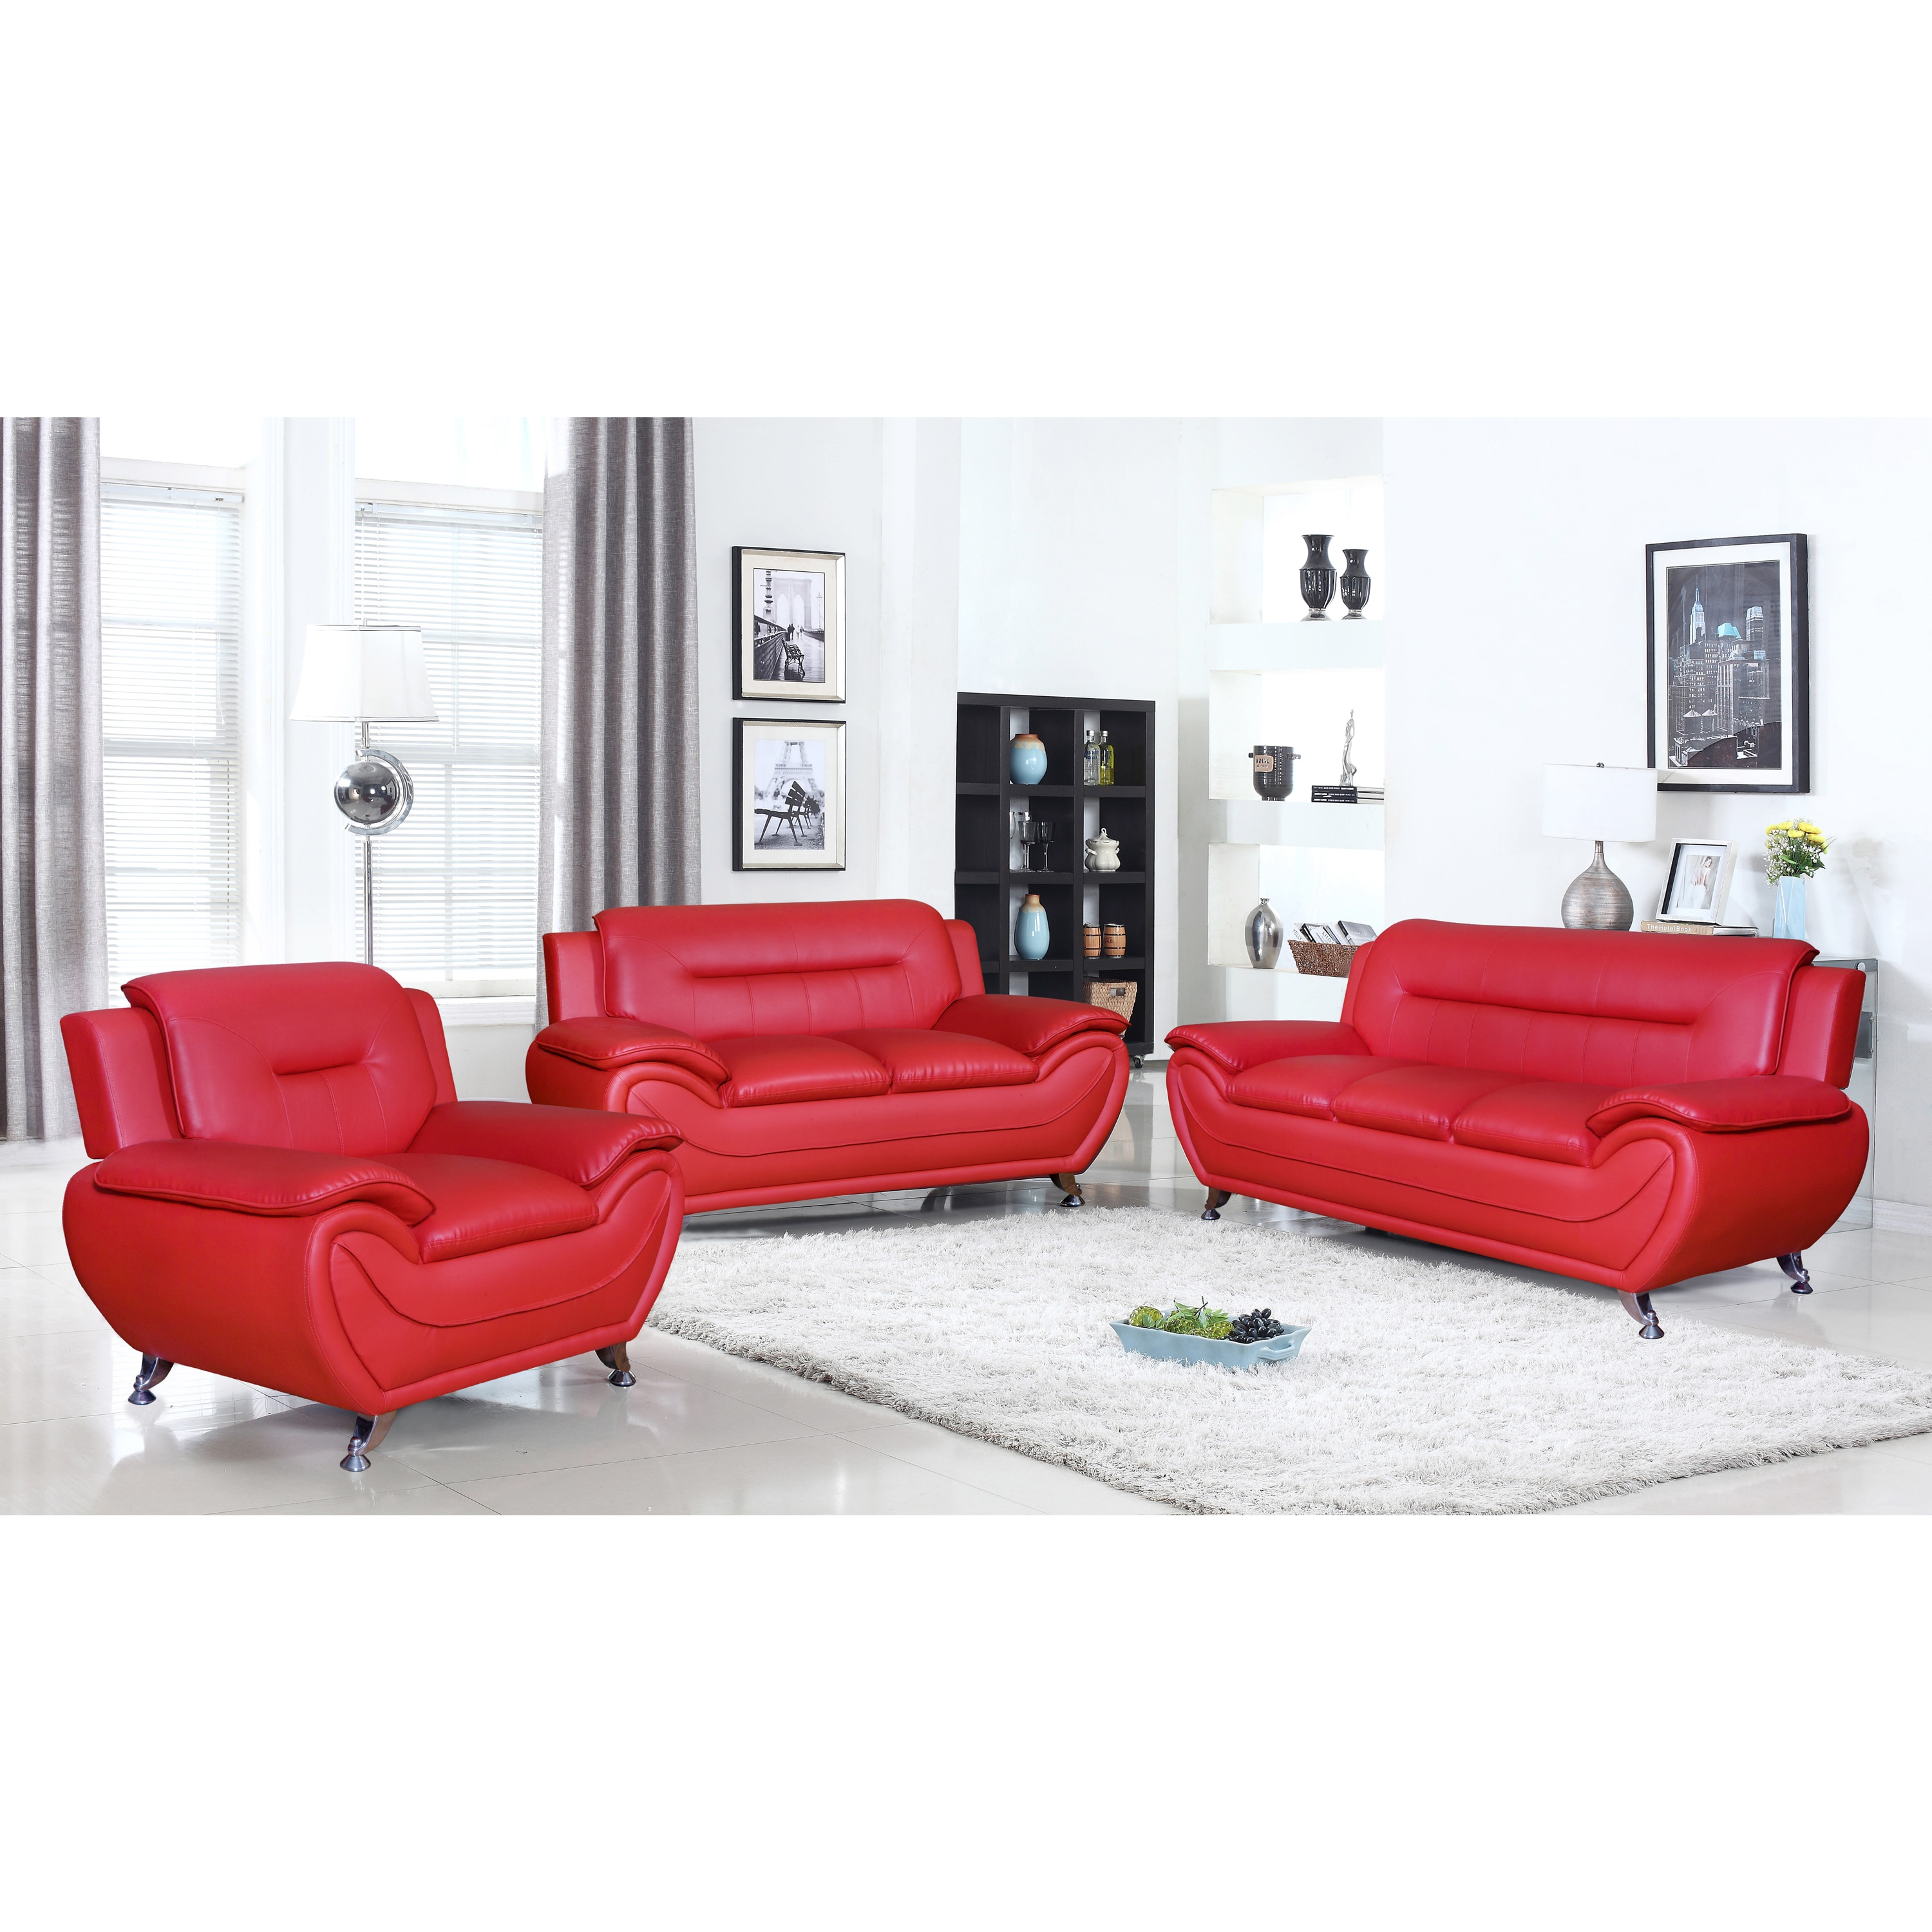 Stunning Red Living Room Set Images - Beautiful Living Room Decor ...